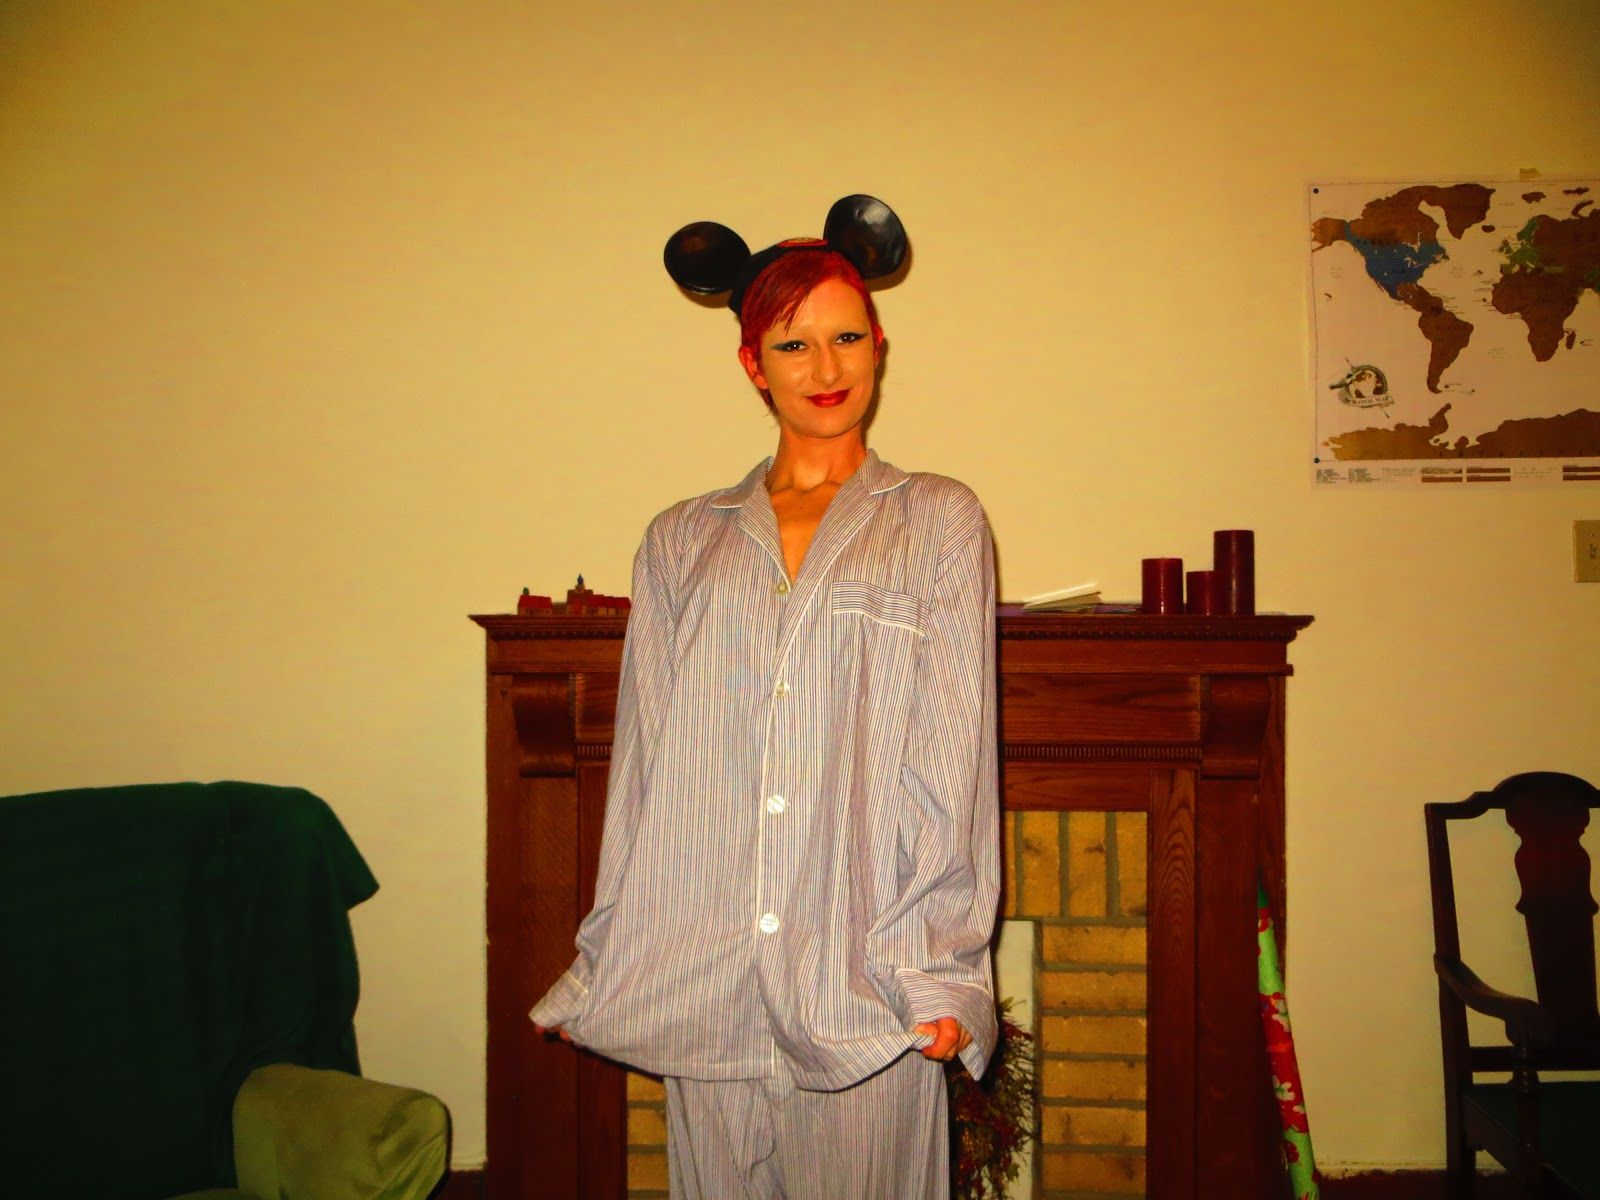 columbia in mickey ears and pajamas | columbia rocky horror